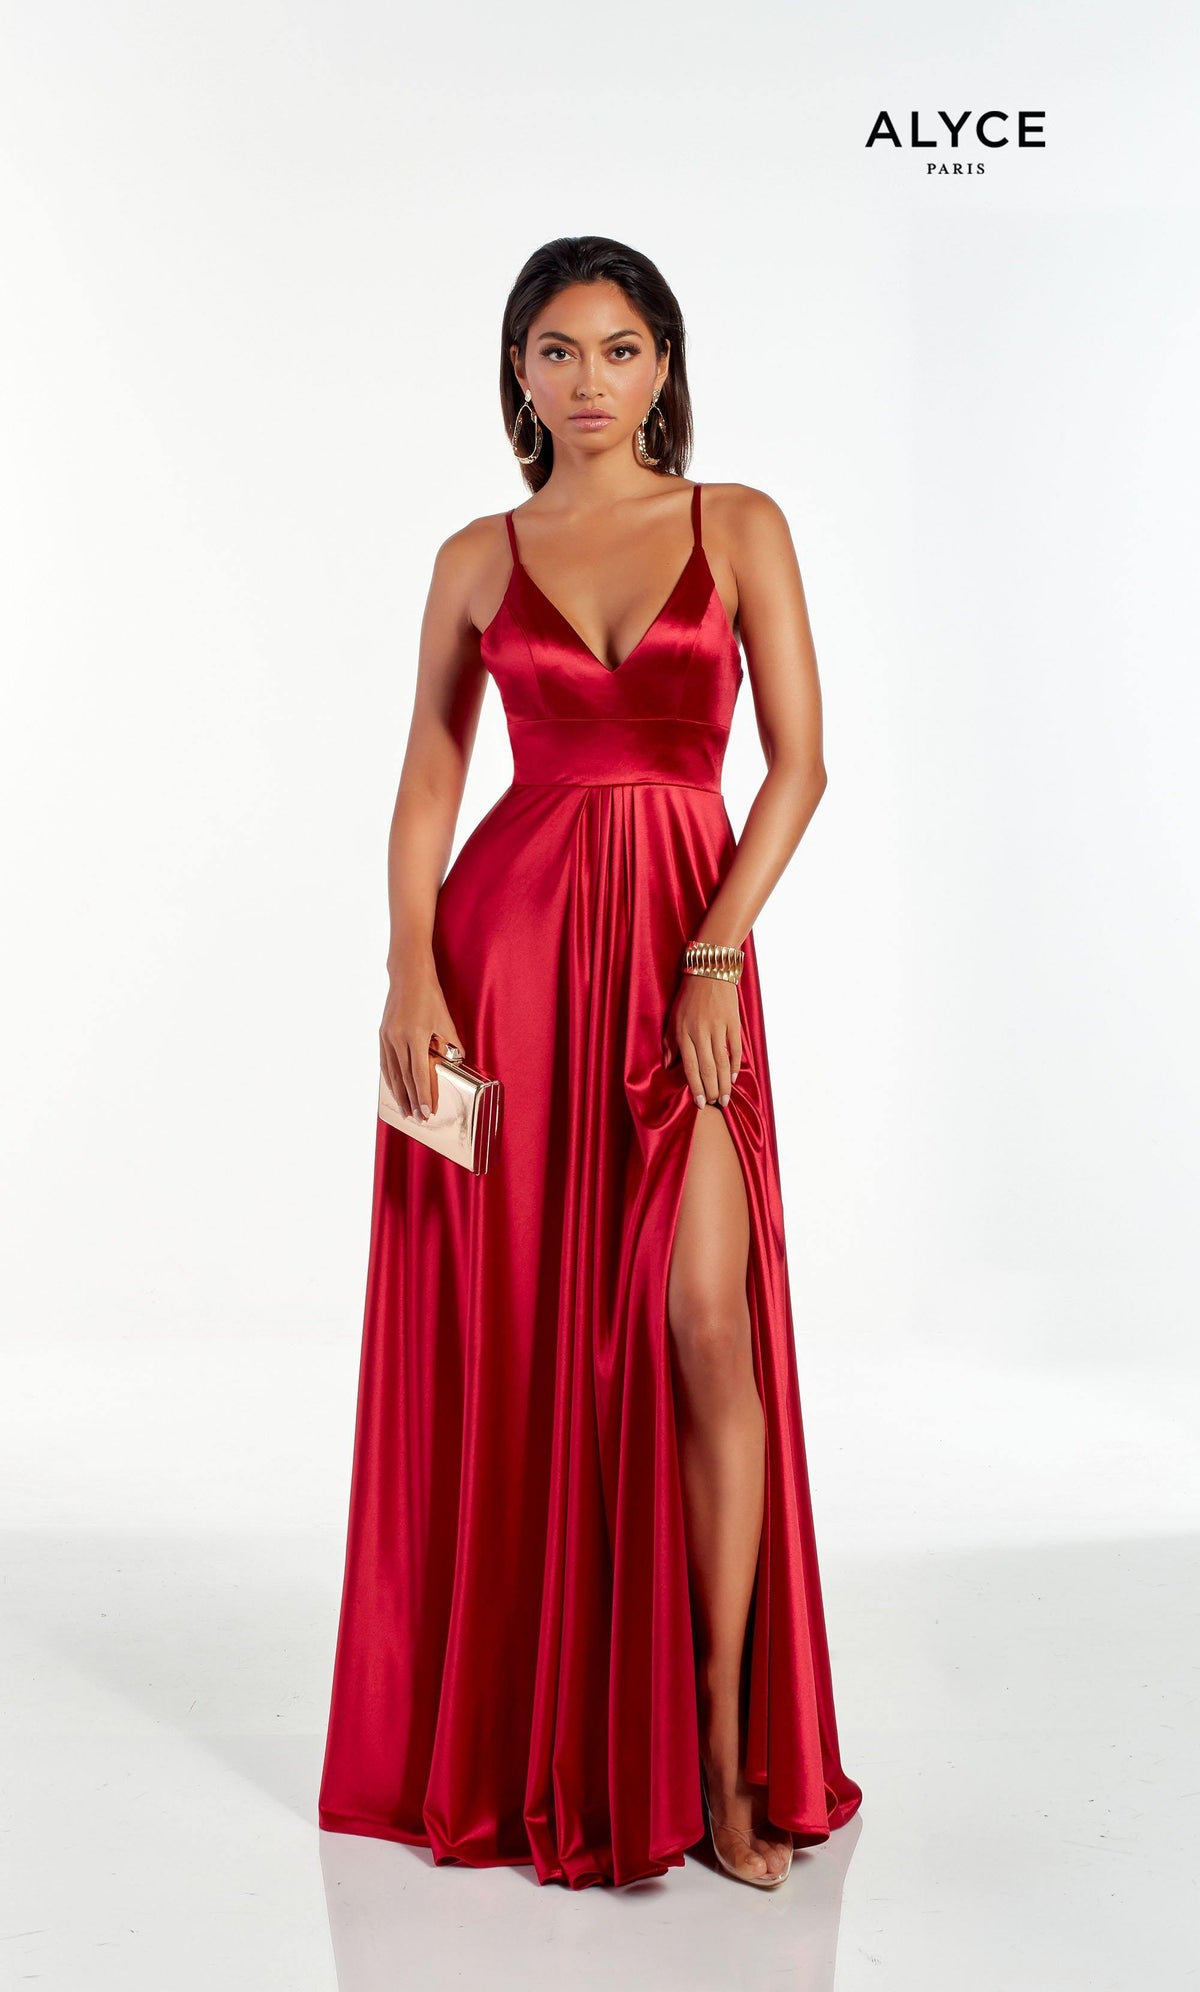 Red flowy satin formal dress with a V shaped neckline and a front slit